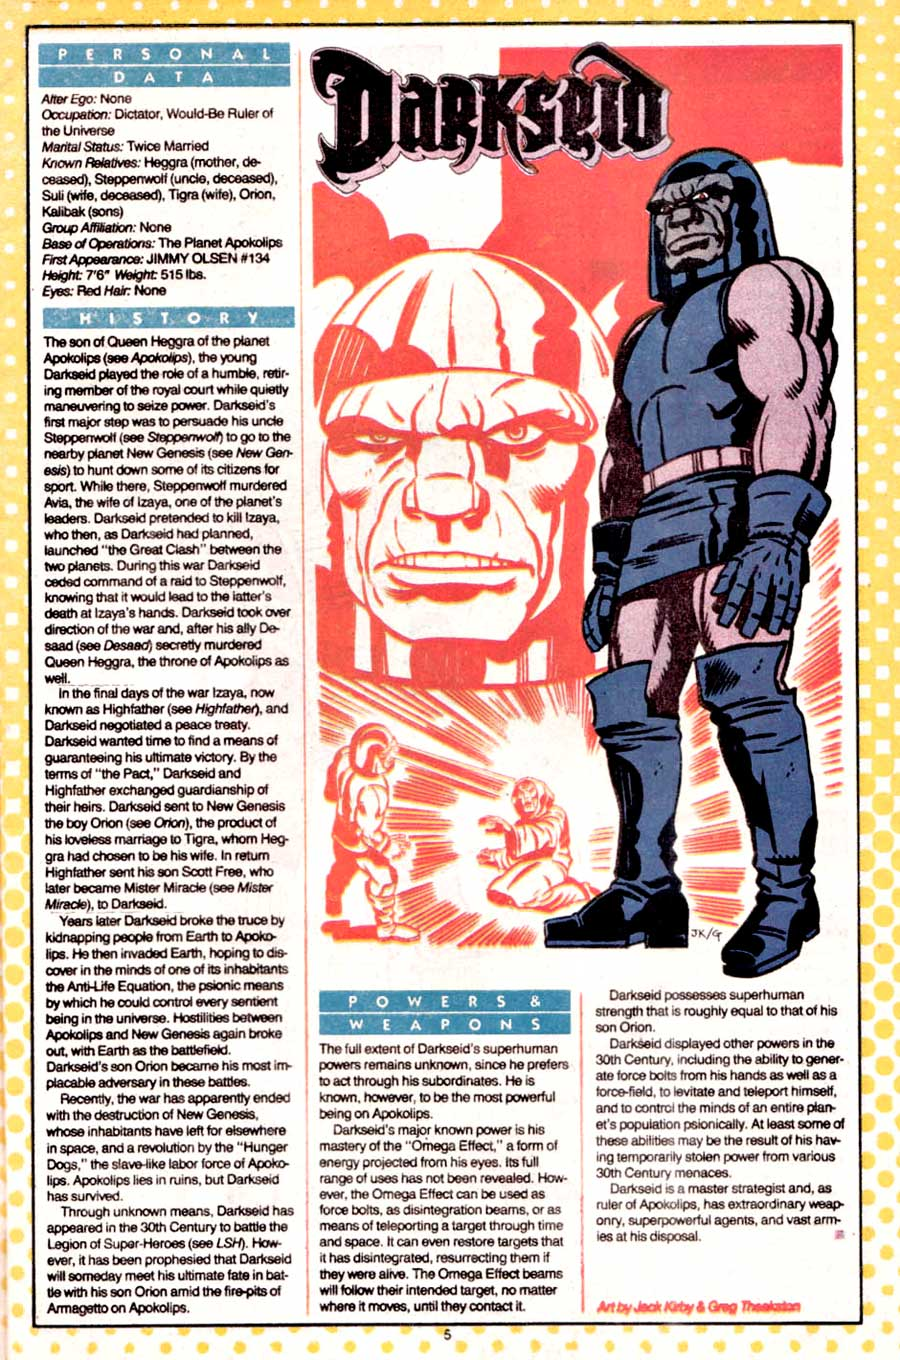 Darkseid by Jack Kirby and Greg Theakston from Who's Who